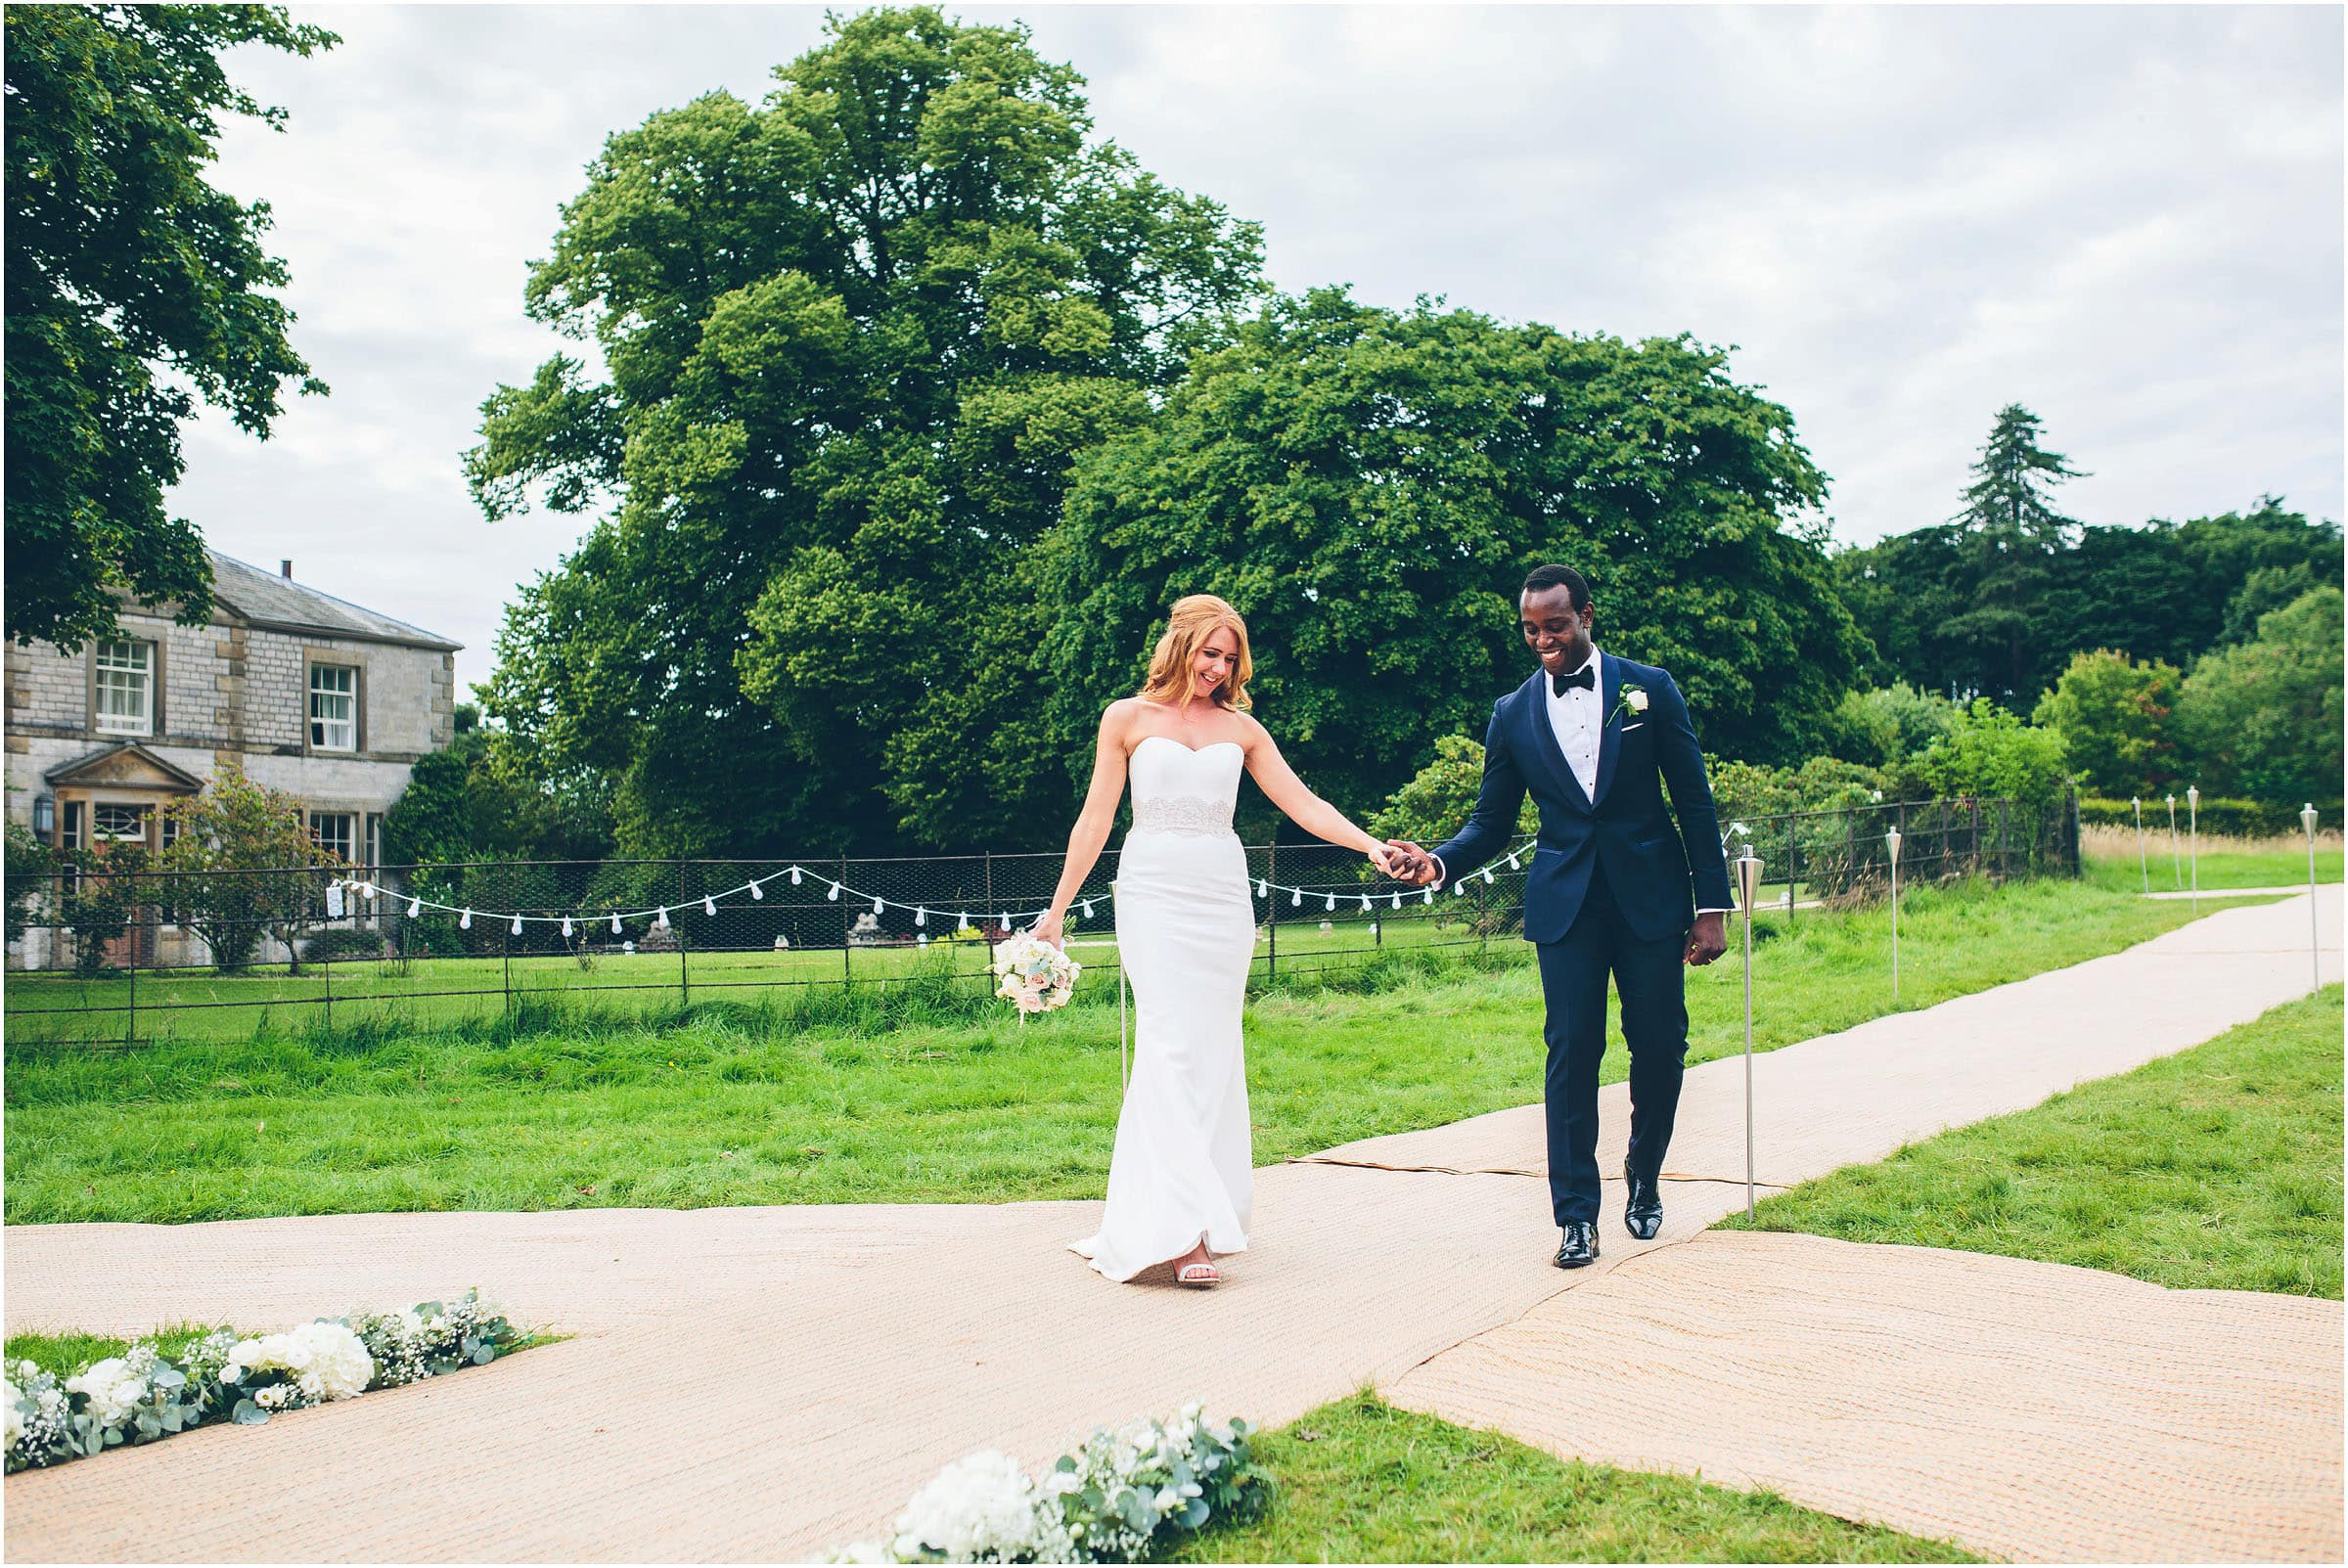 Underley_Grange_Wedding_Photography_0099